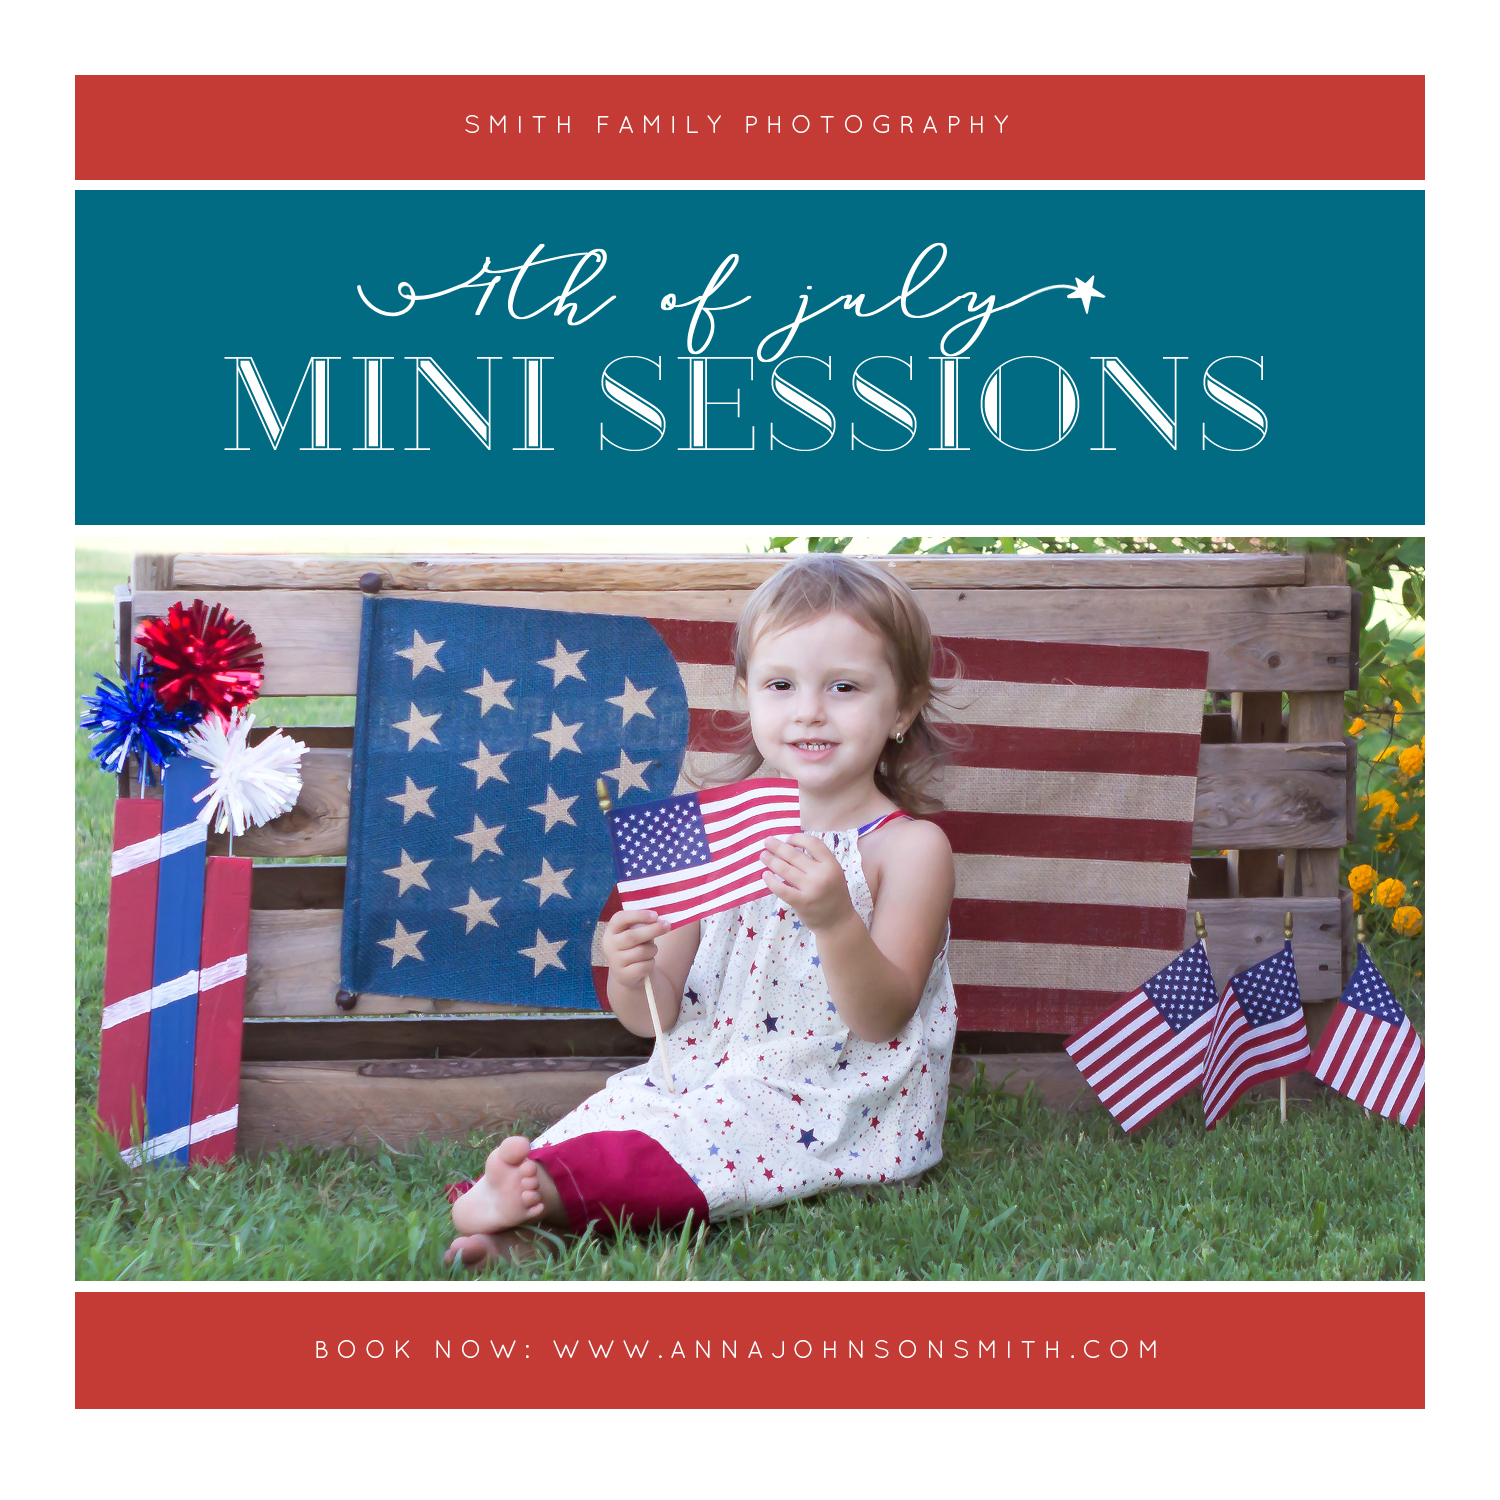 Fourth of July Sessions will be held in Groesbeck on June 24th and 25th.